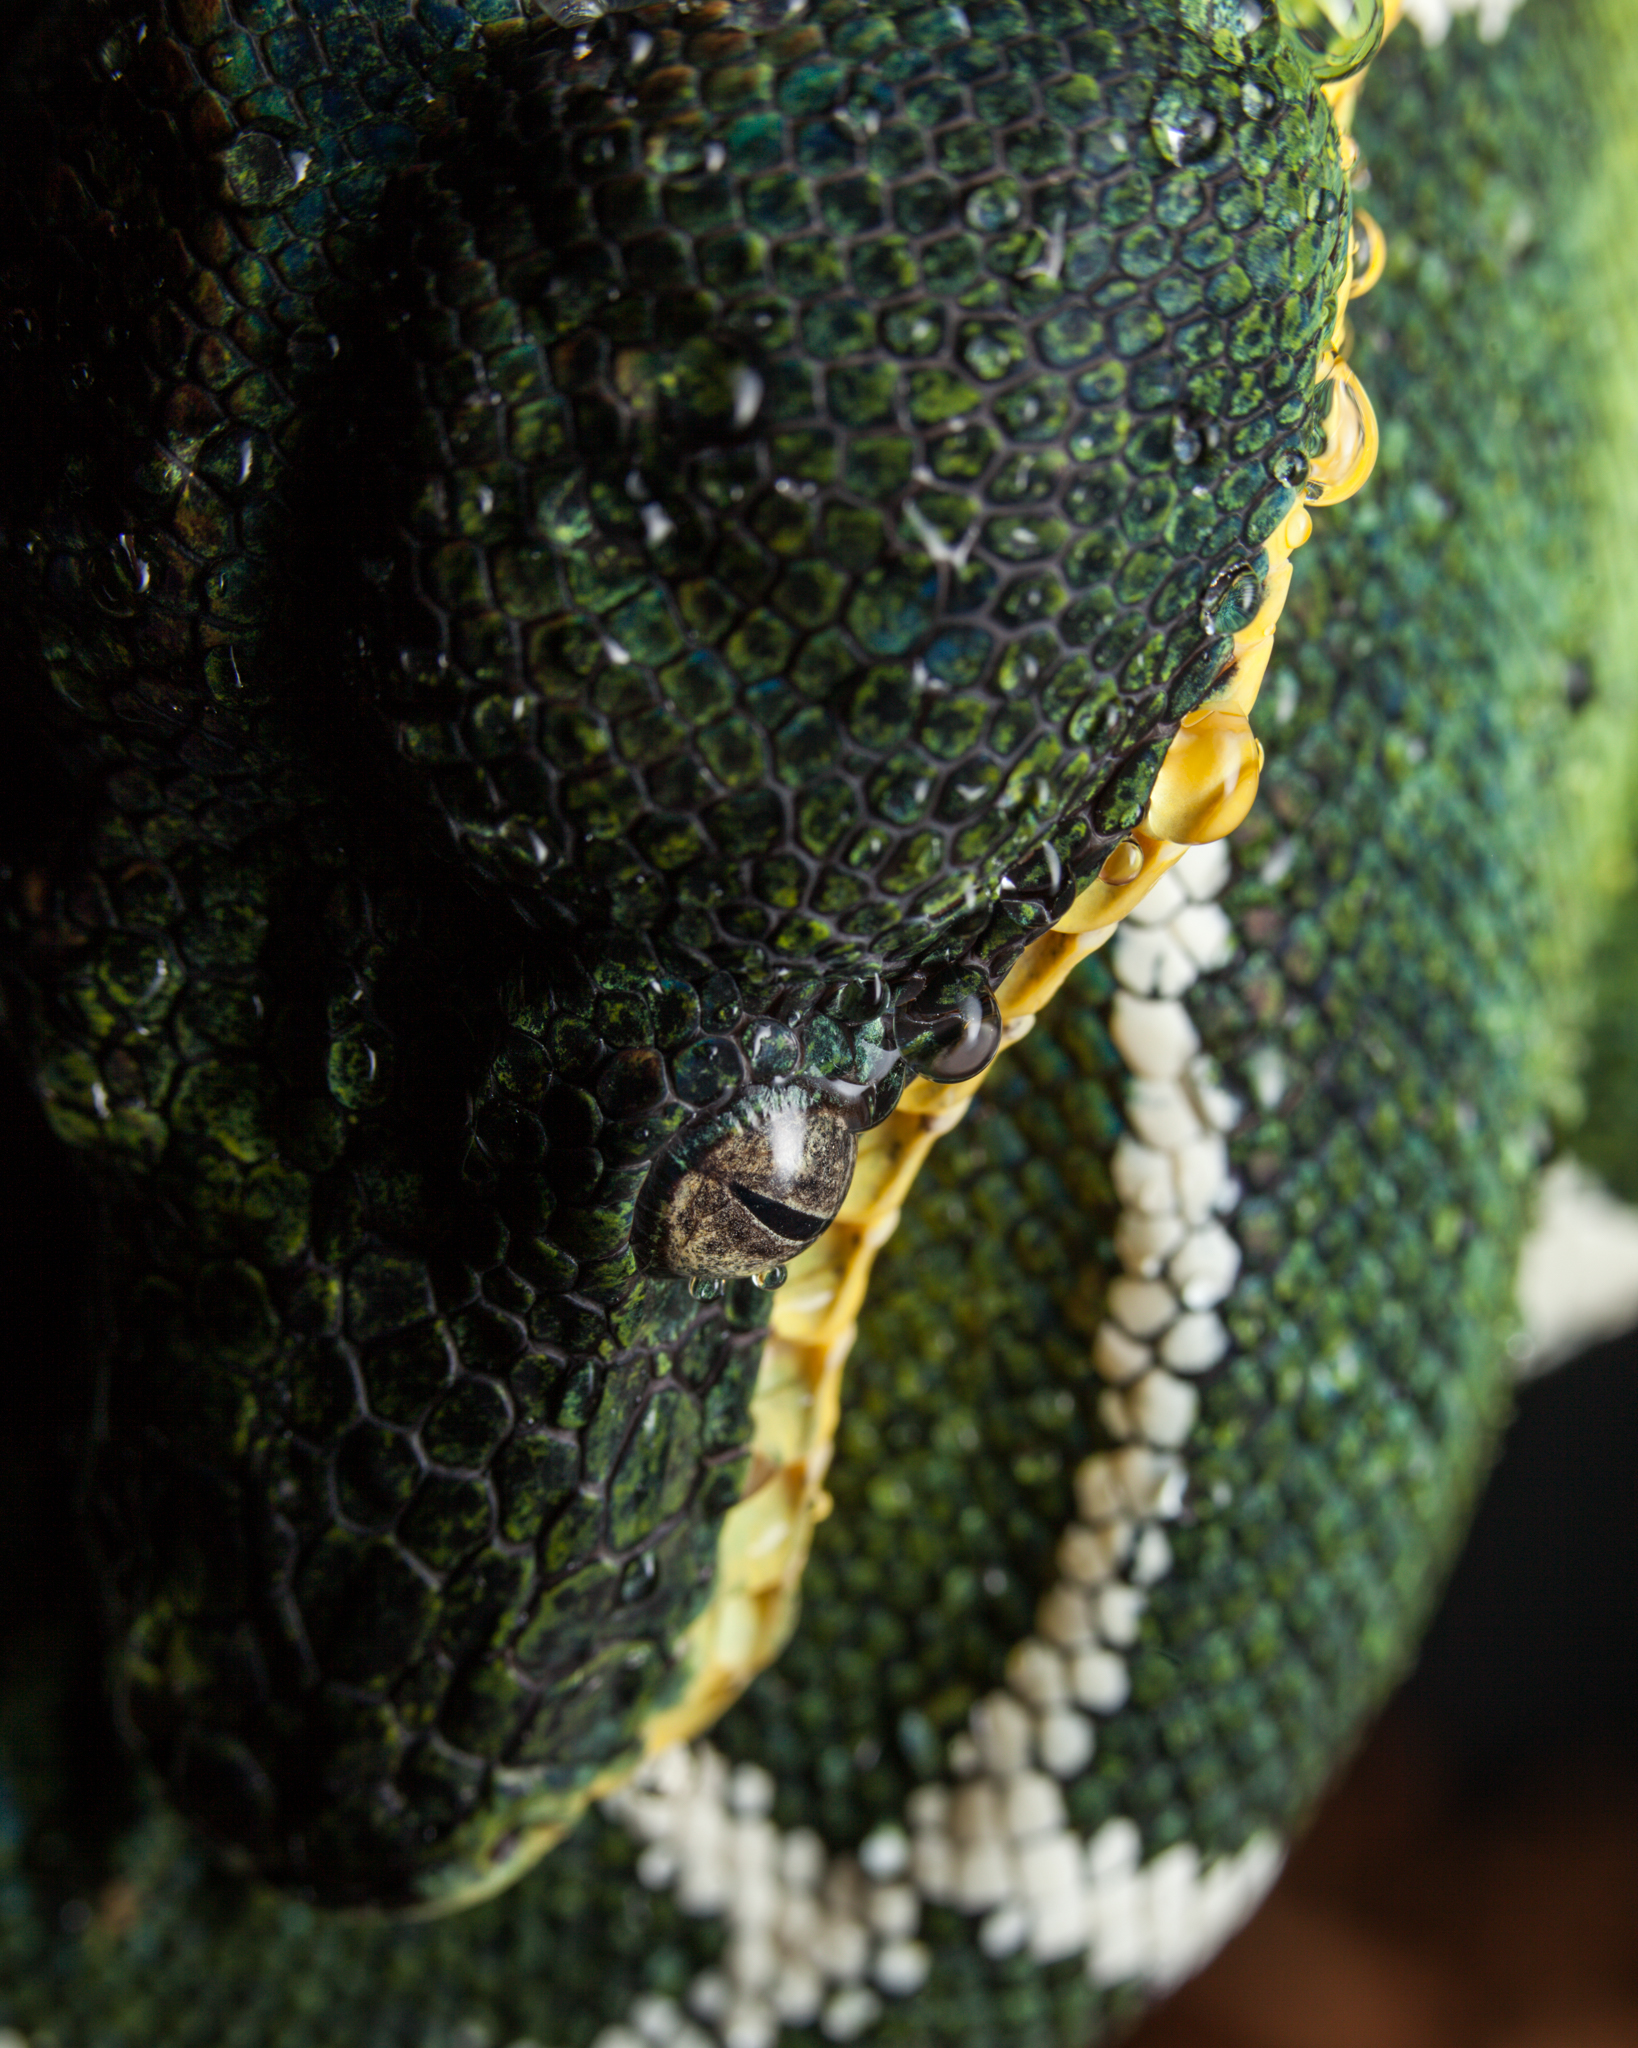 Macro Lens for Reptile Photography